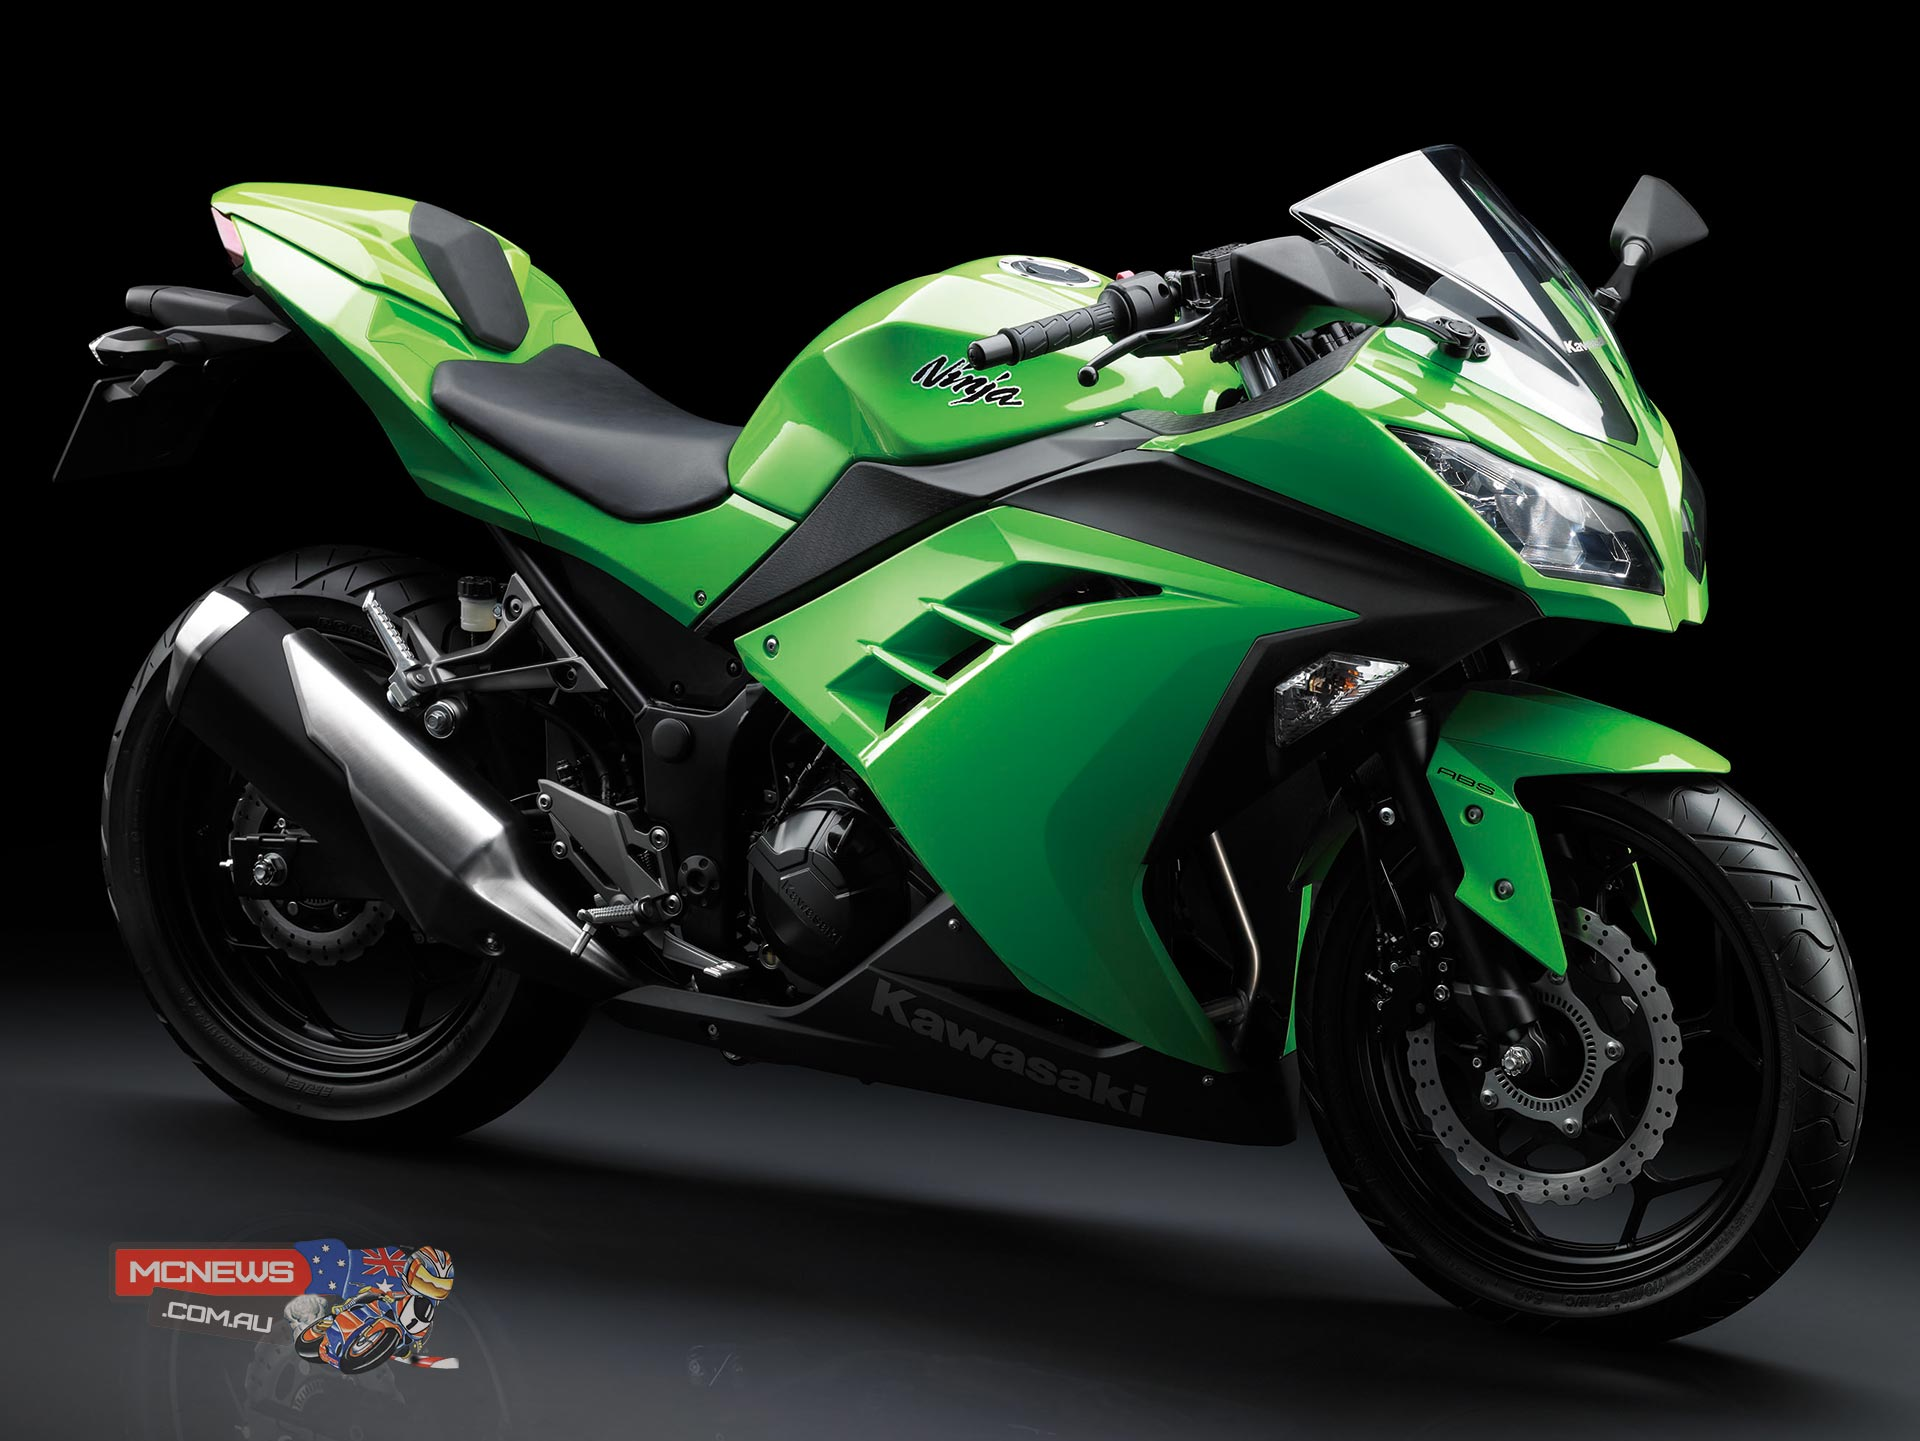 Kawasaki Ninja 300 remains Australia's top selling motorcycle